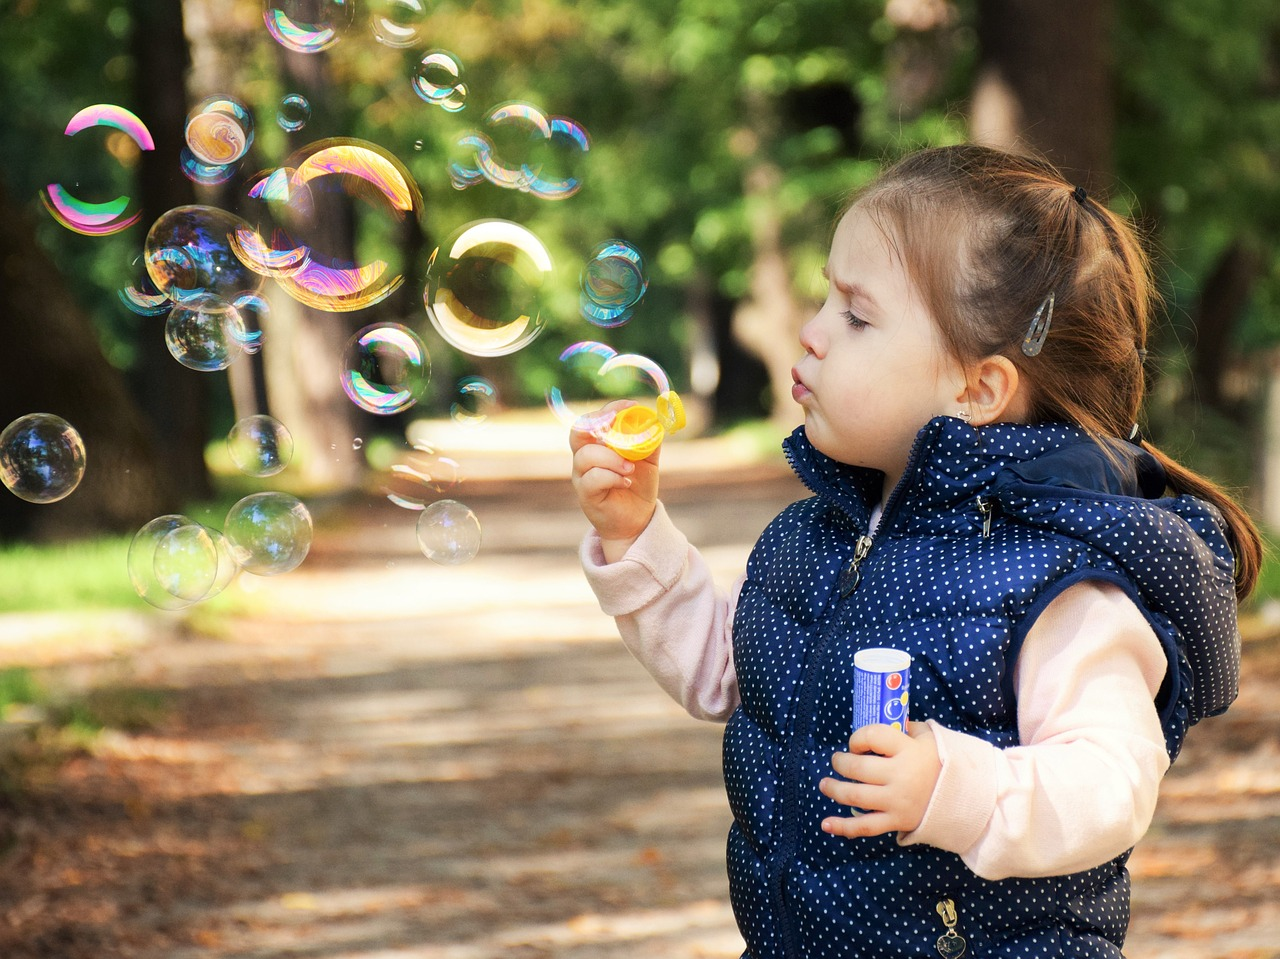 Kid blowing as soap bubbleImage by Daniela Dimitrova from Pixabay